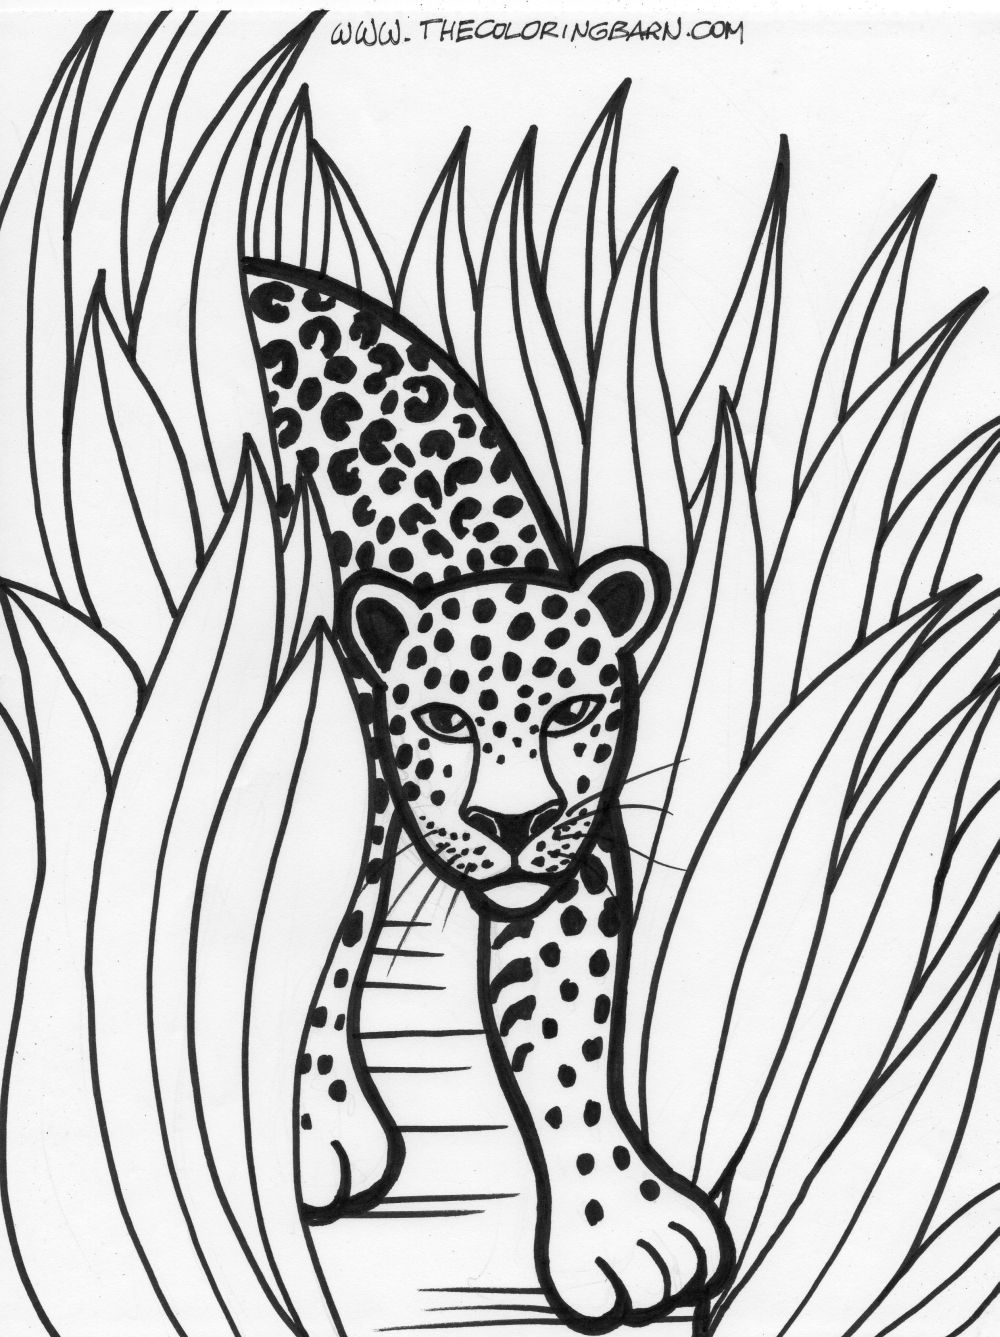 Animals free printable coloring pages ~ Rainforest printable coloring pages | The Coloring Barn ...